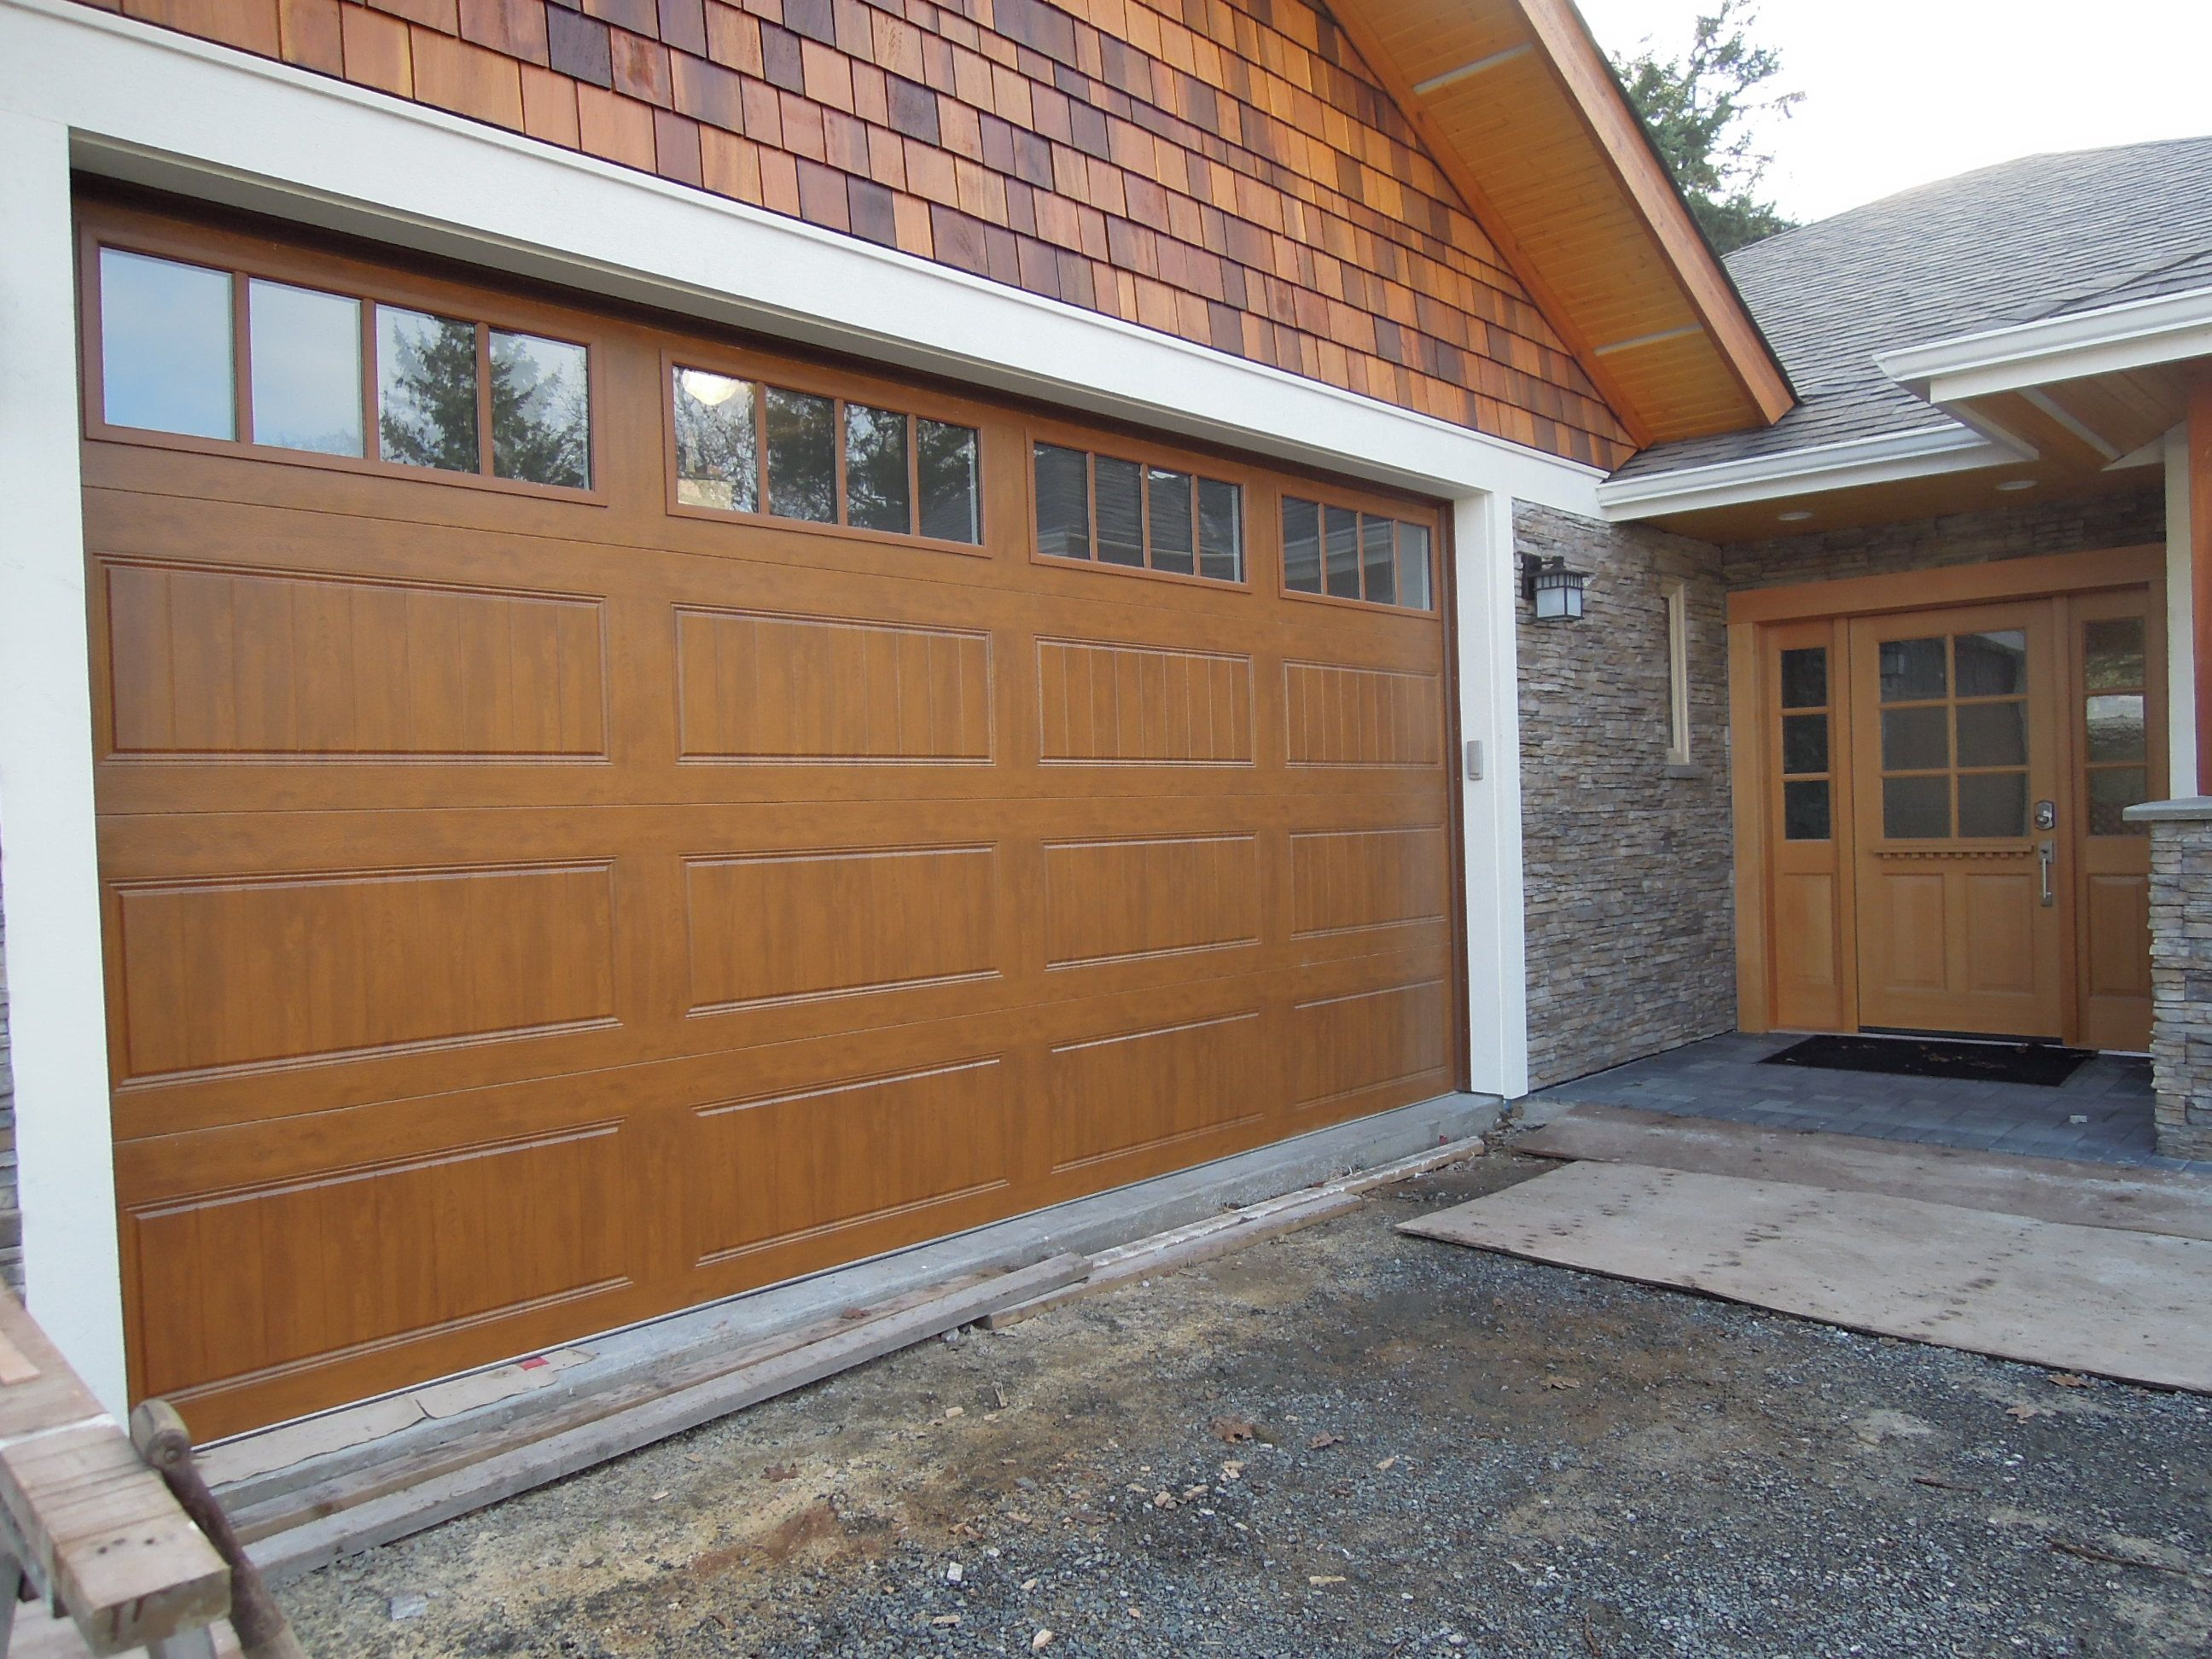 Gallery ultragrain medium oak finish model gd1lp with for Buy clopay garage doors online